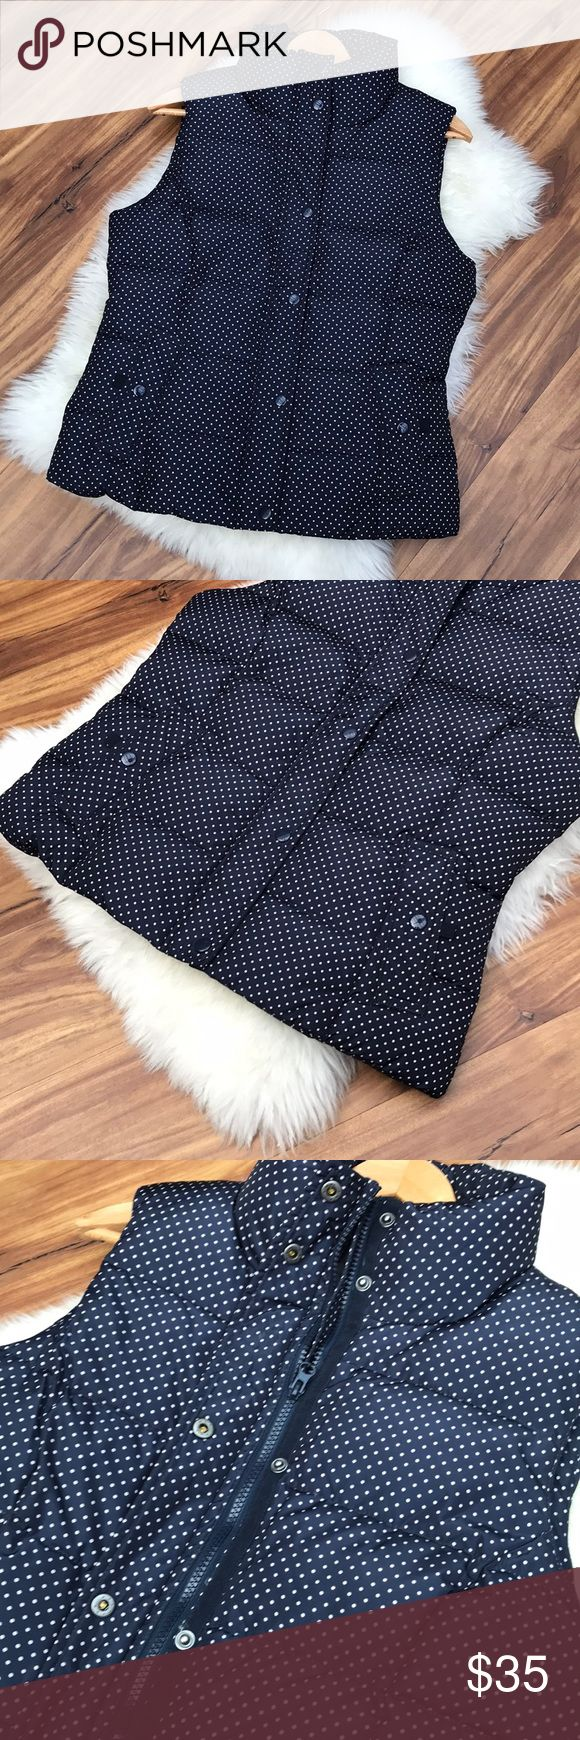 Polka dot down puffer vest Like new! Worn very gently & no signs of wear. Warm puffer vest style in navy blue with light pink polka dot. Shell & lining are 100% polyester. Filler is 50% down & 50% waterfowl feathers. Bass Jackets & Coats Vests